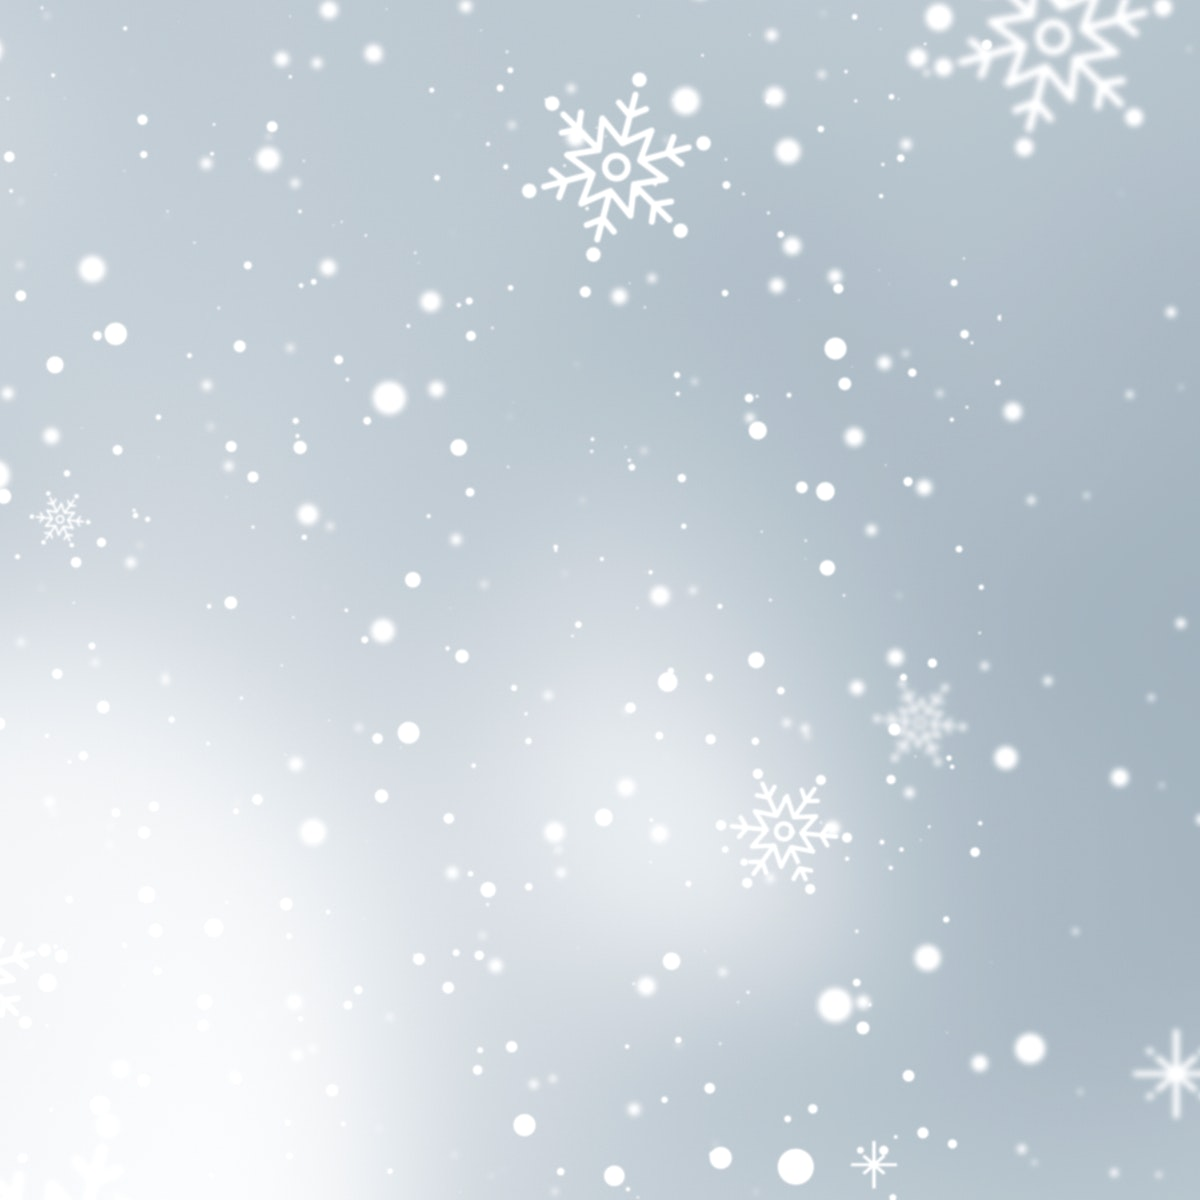 Snowflakes patterned on gray background